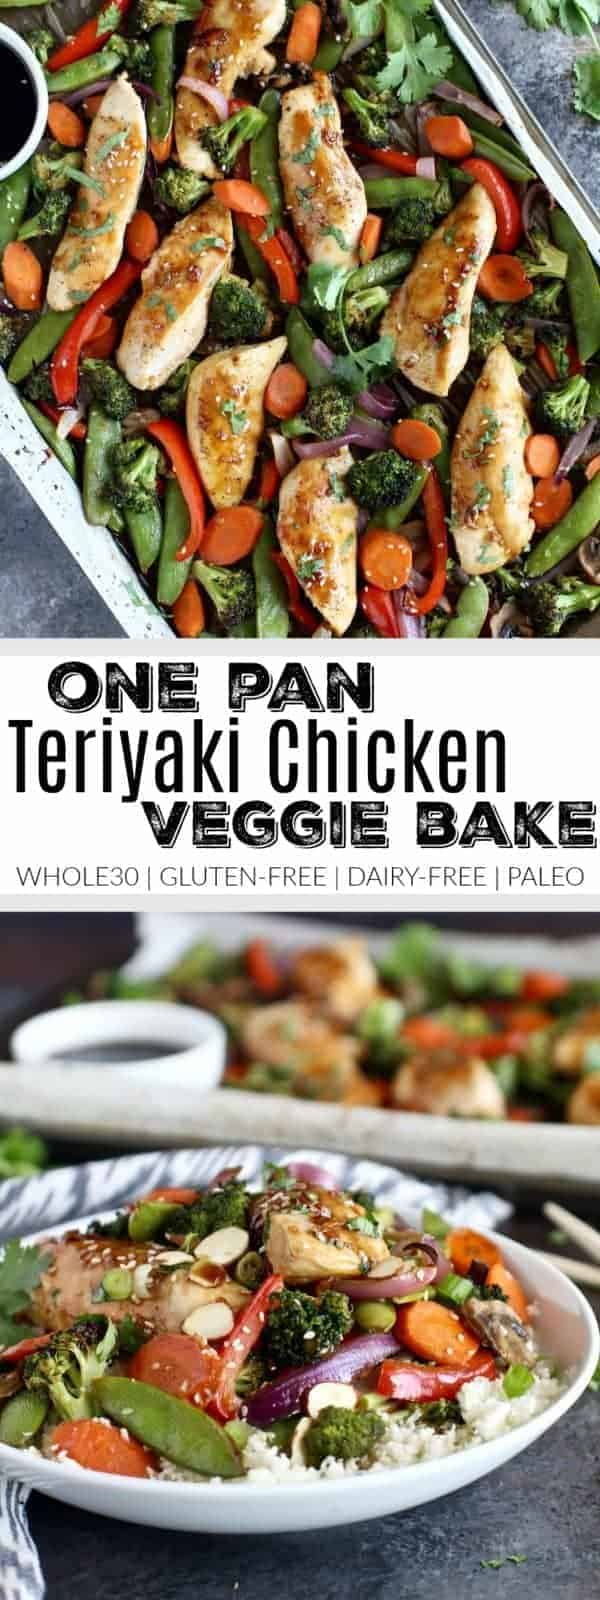 Full of flavor, nutrient-dense veggies and satisfying protein. This One-Pan Teriyaki Chicken Veggie Bake that's made with a simple homemade teriyaki sauce is Whole30-friendly and perfect for weeknight dinners. Whole30 | Gluten-free | Dairy-free | Paleo | https://therealfoodrds.com/one-pan-teriyaki-chicken-veggie-bake/